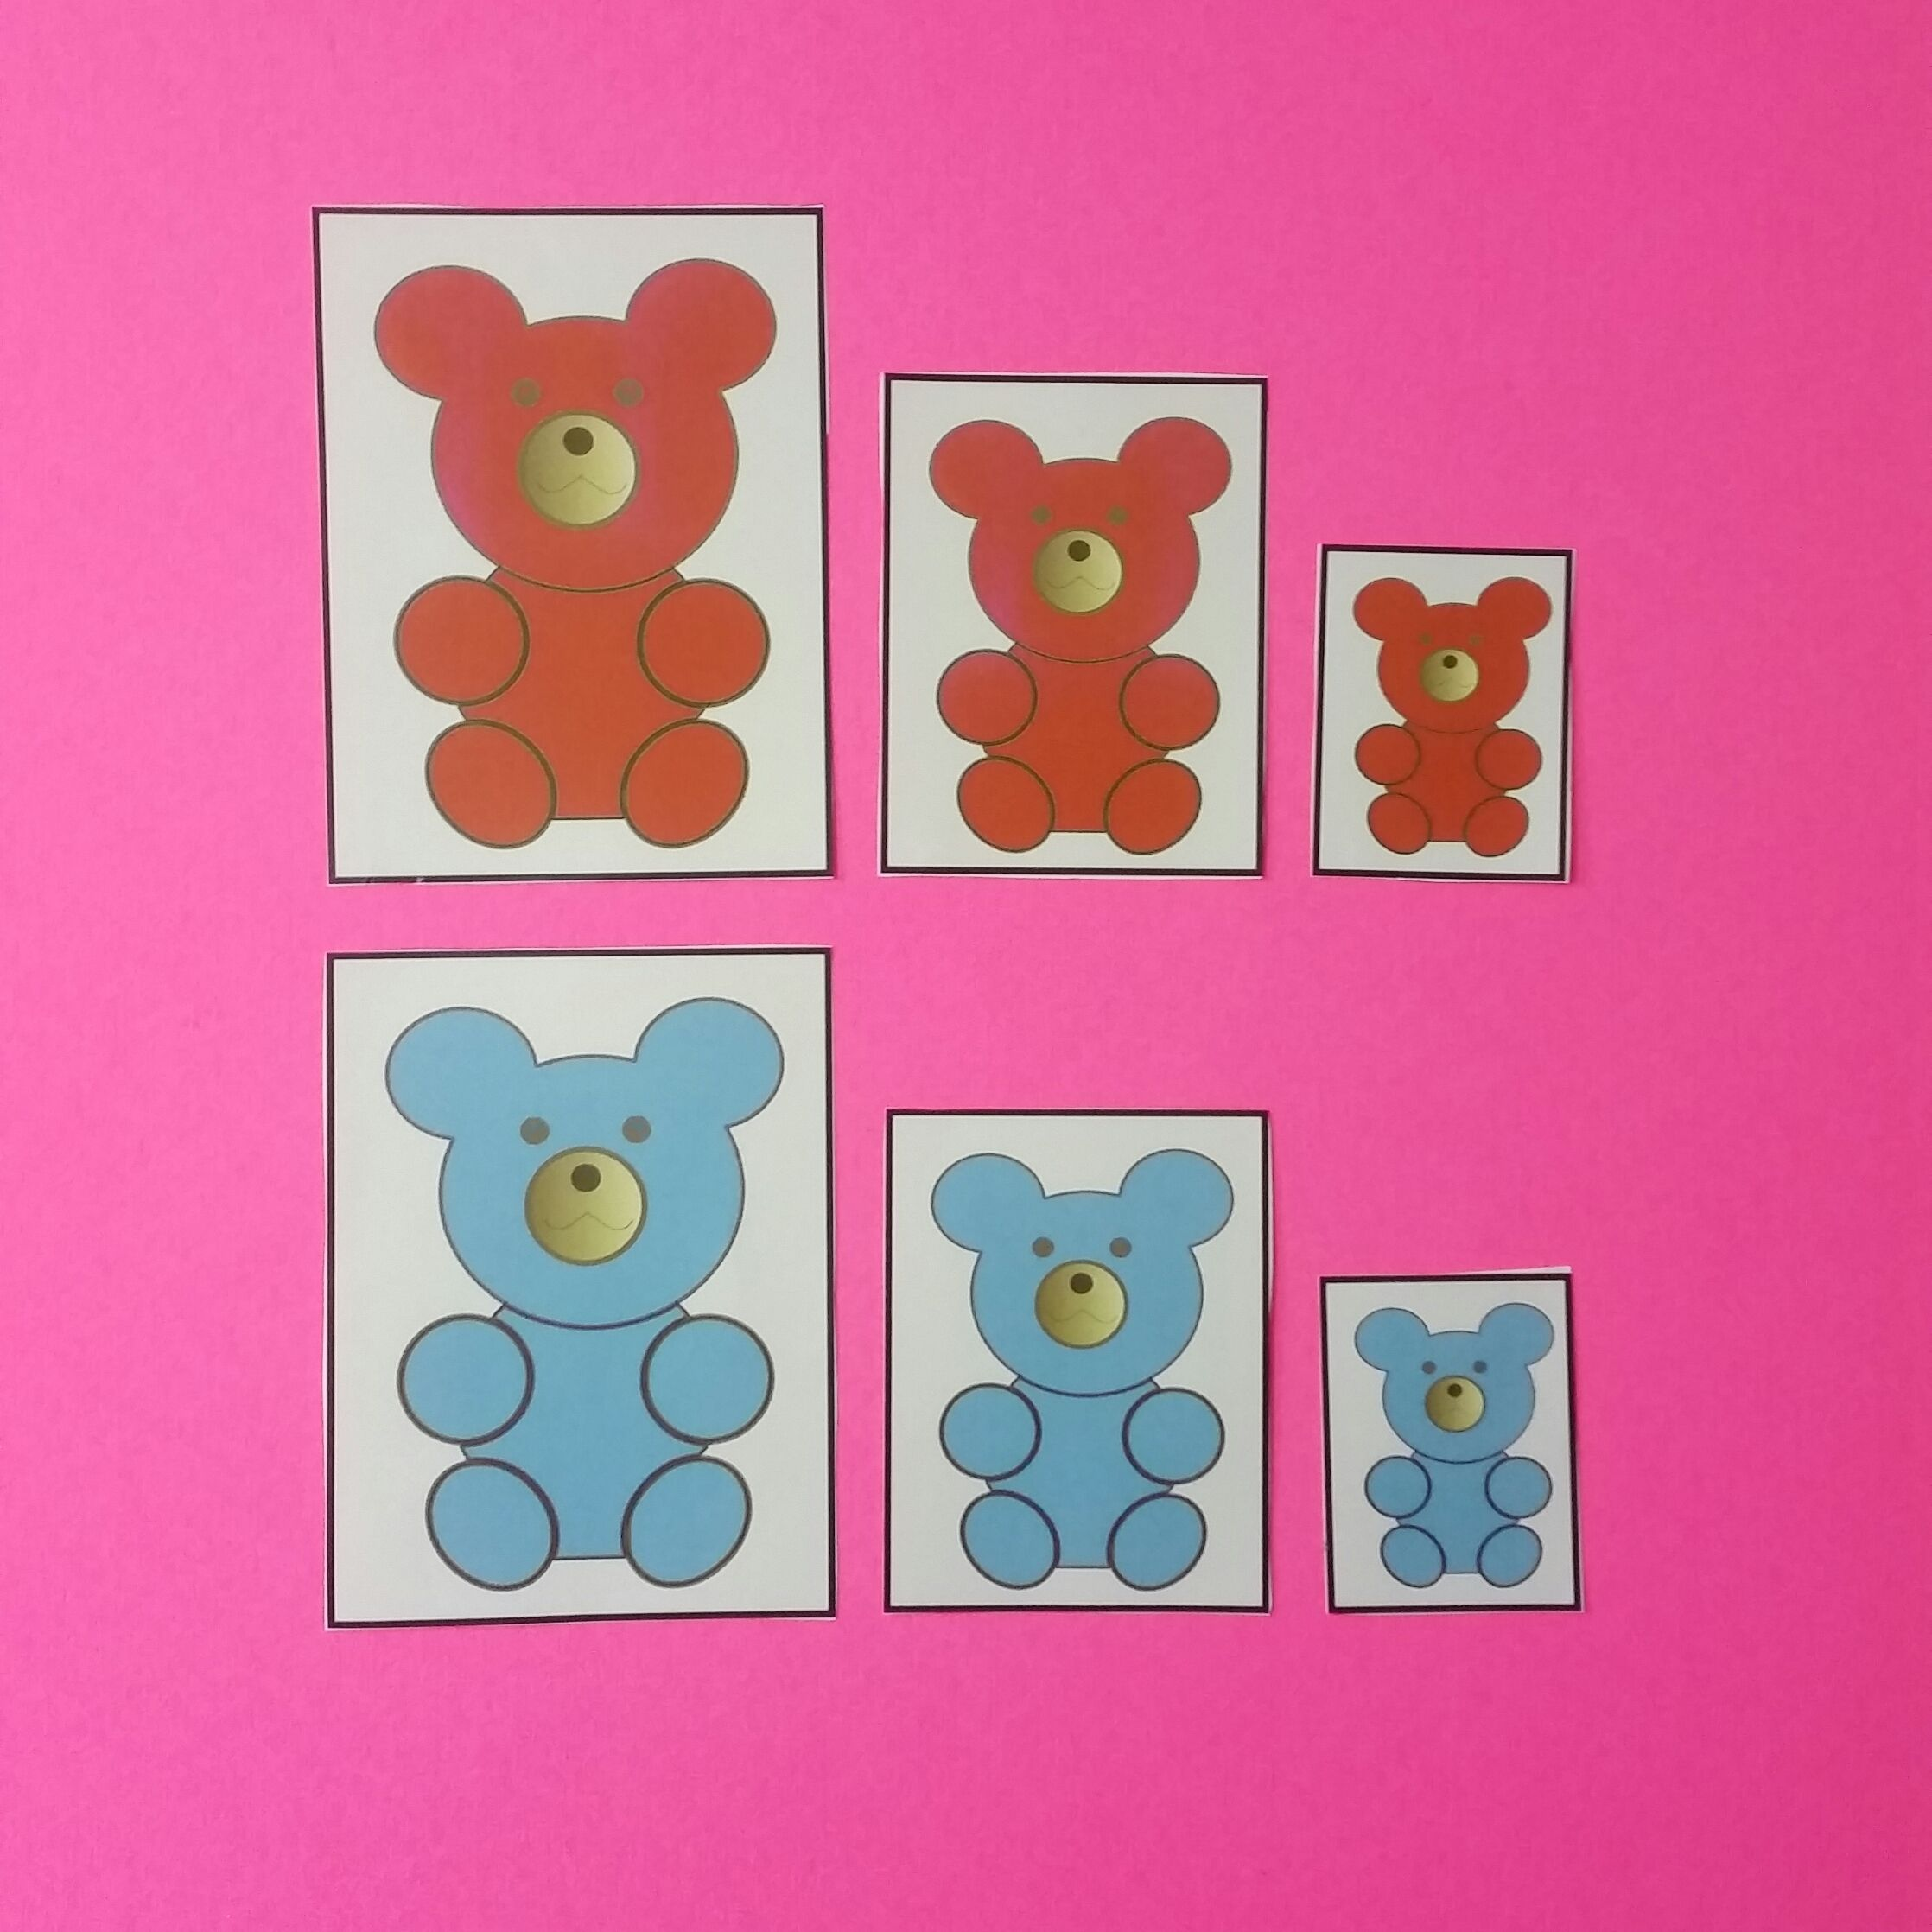 Sort Bear By Size And Color Keywords Bear Teddy File